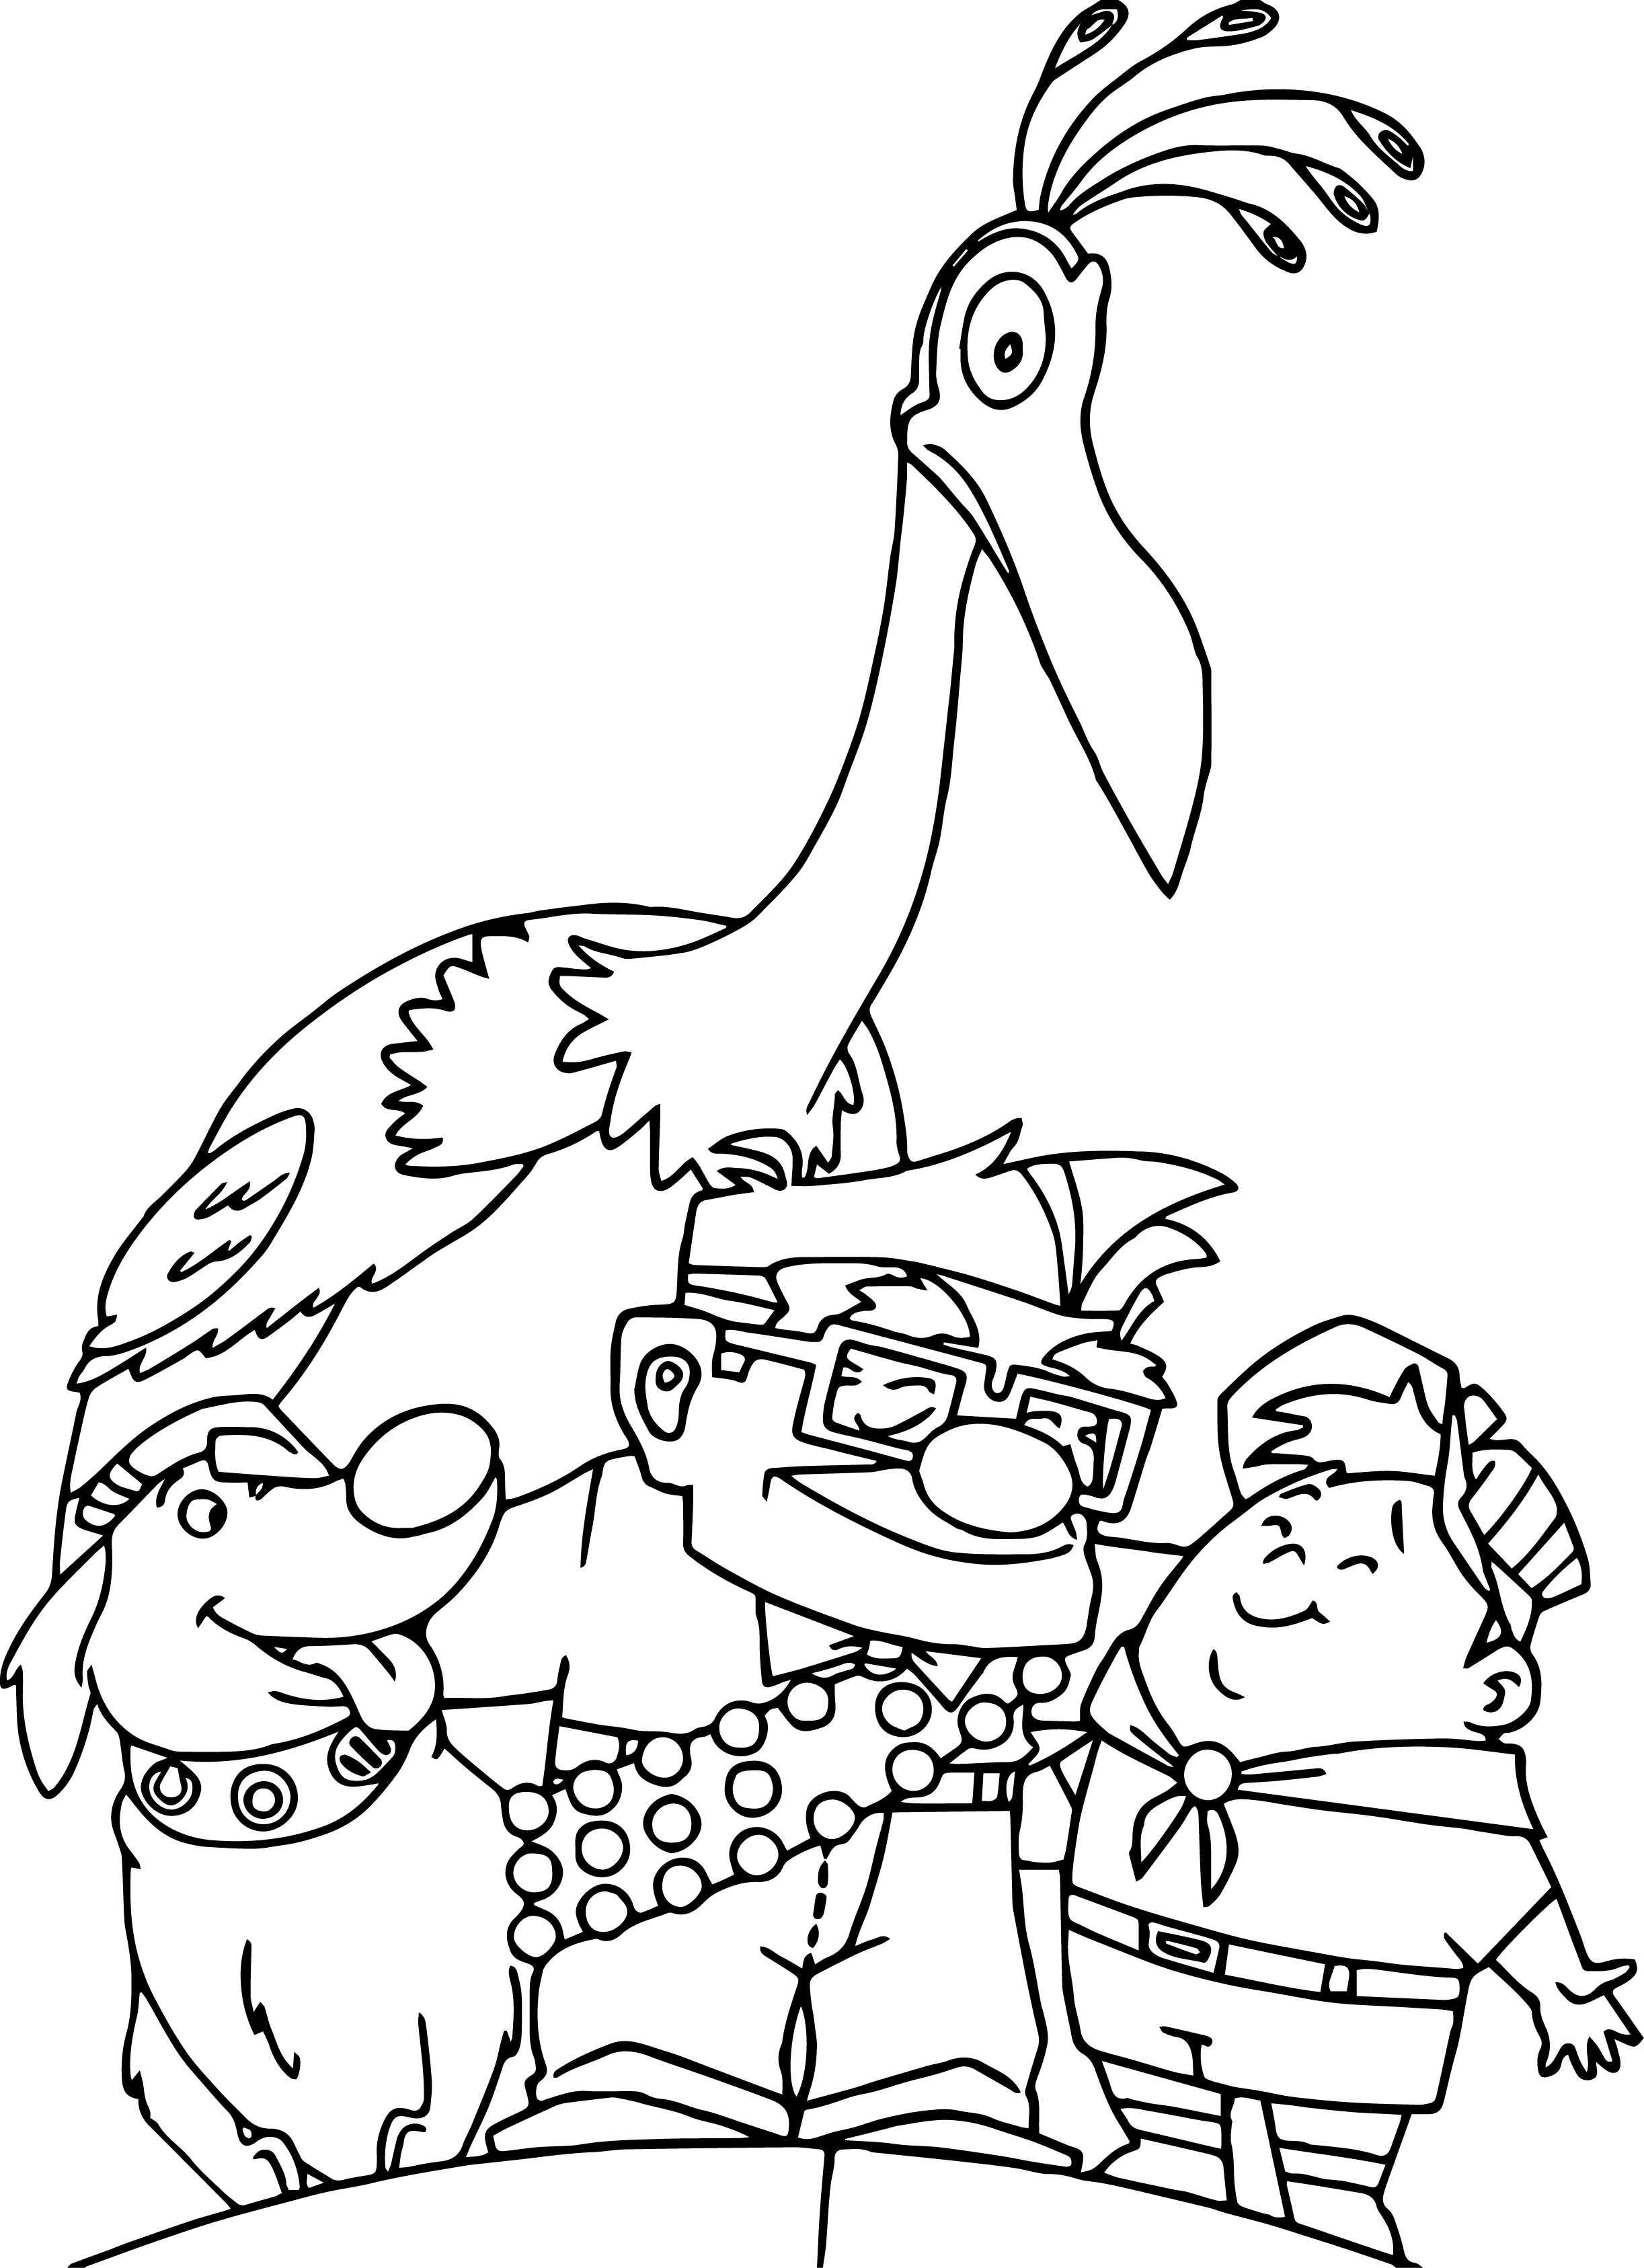 pixar coloring pages to print - disney pixar up coloring pages